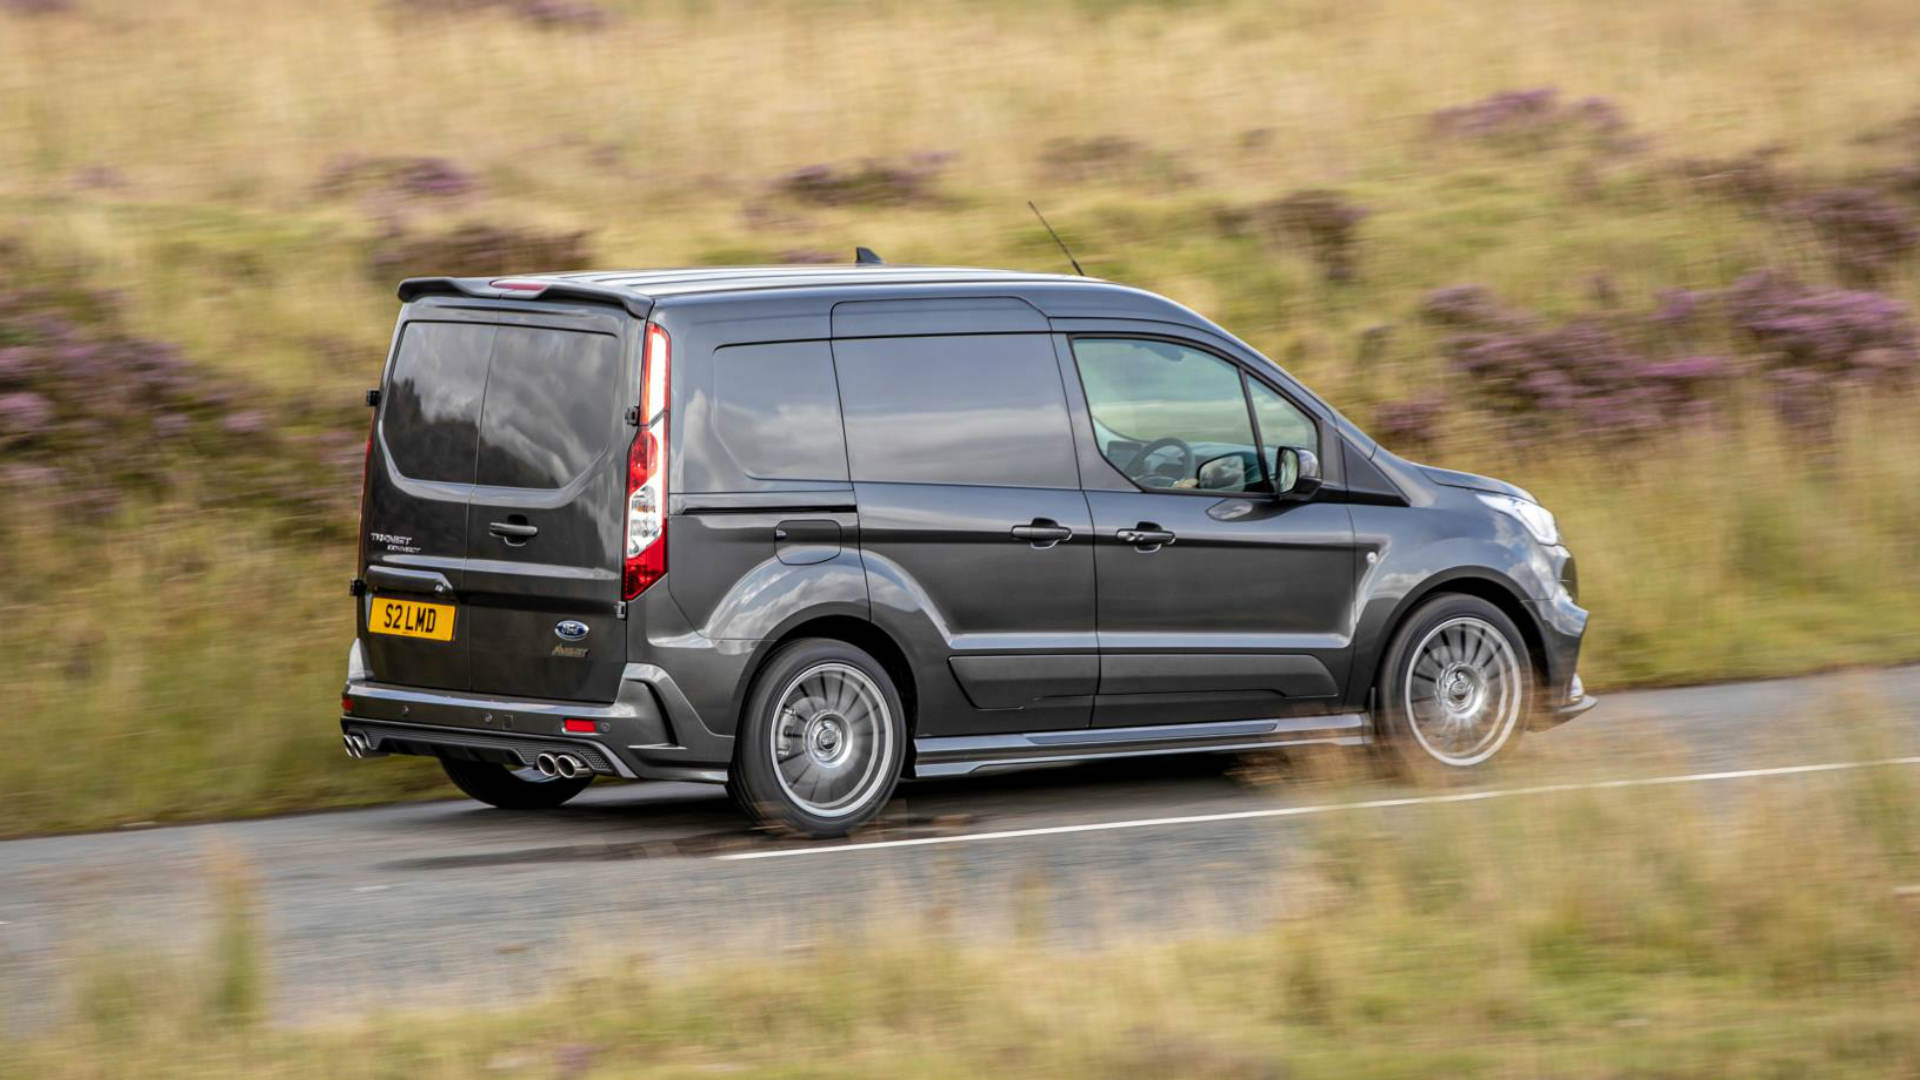 MS-RT Ford Transit Connect road test